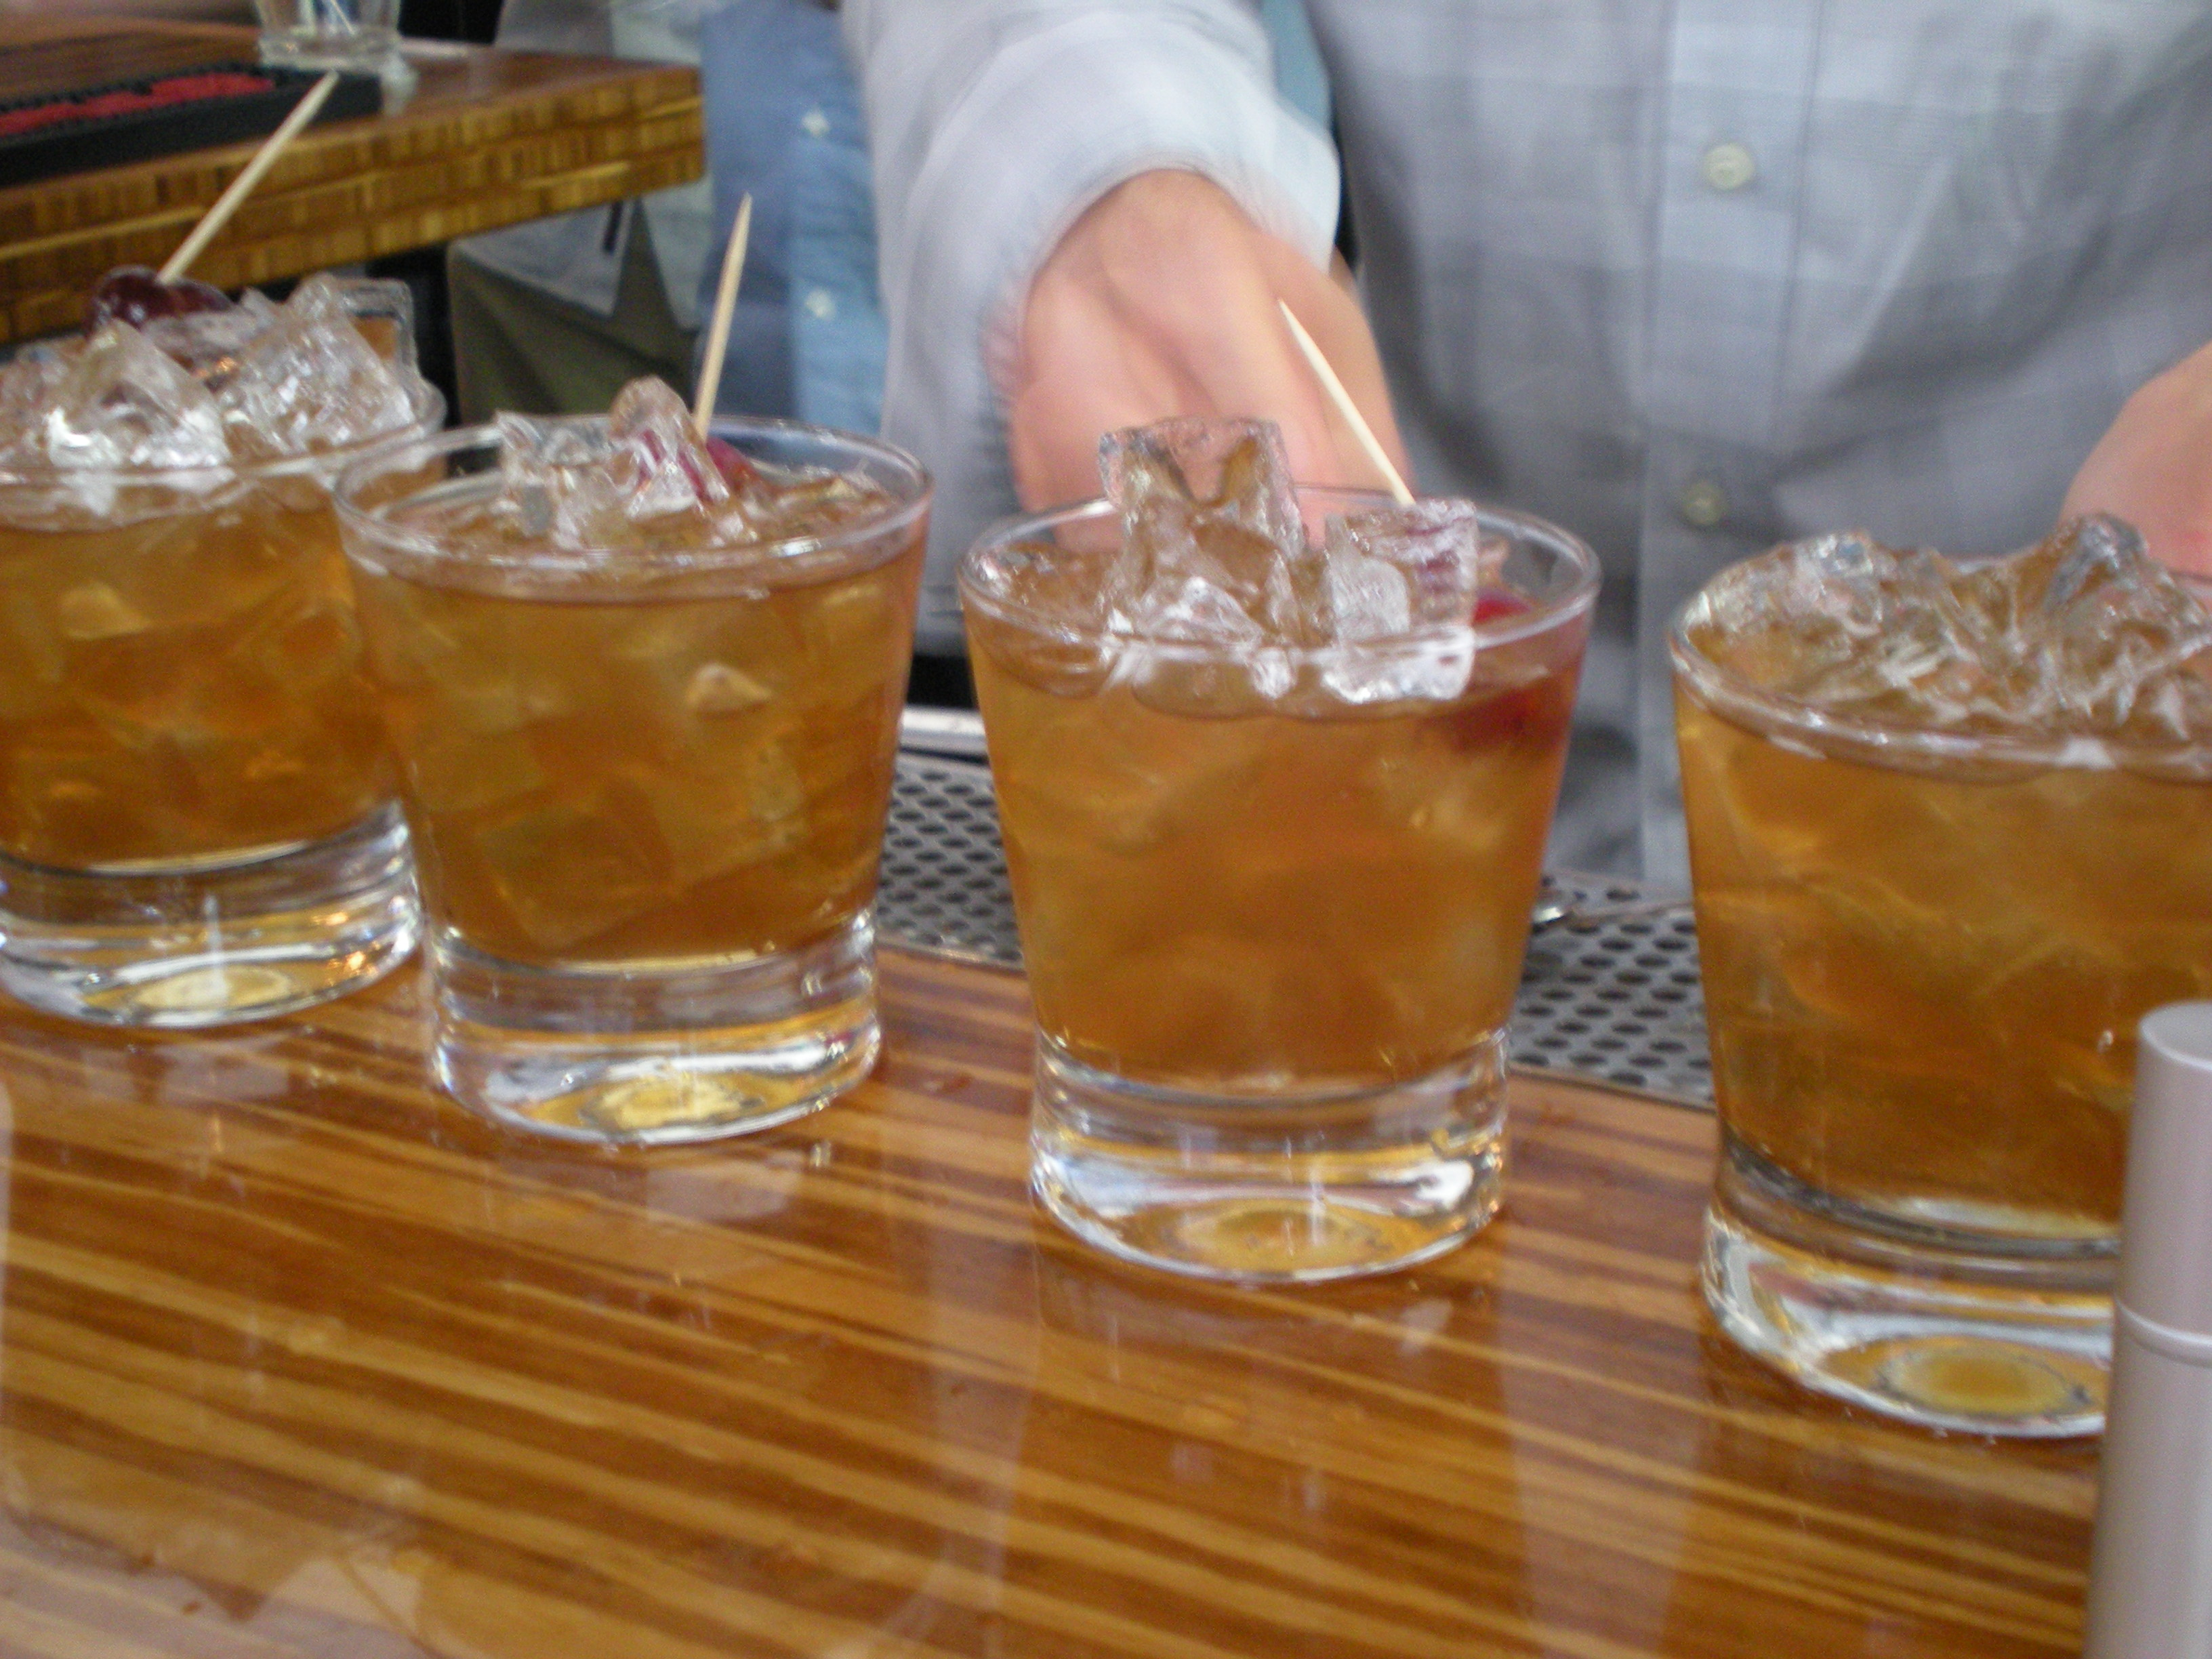 Variations on a theme — Manhattan style drinks ready for the judges